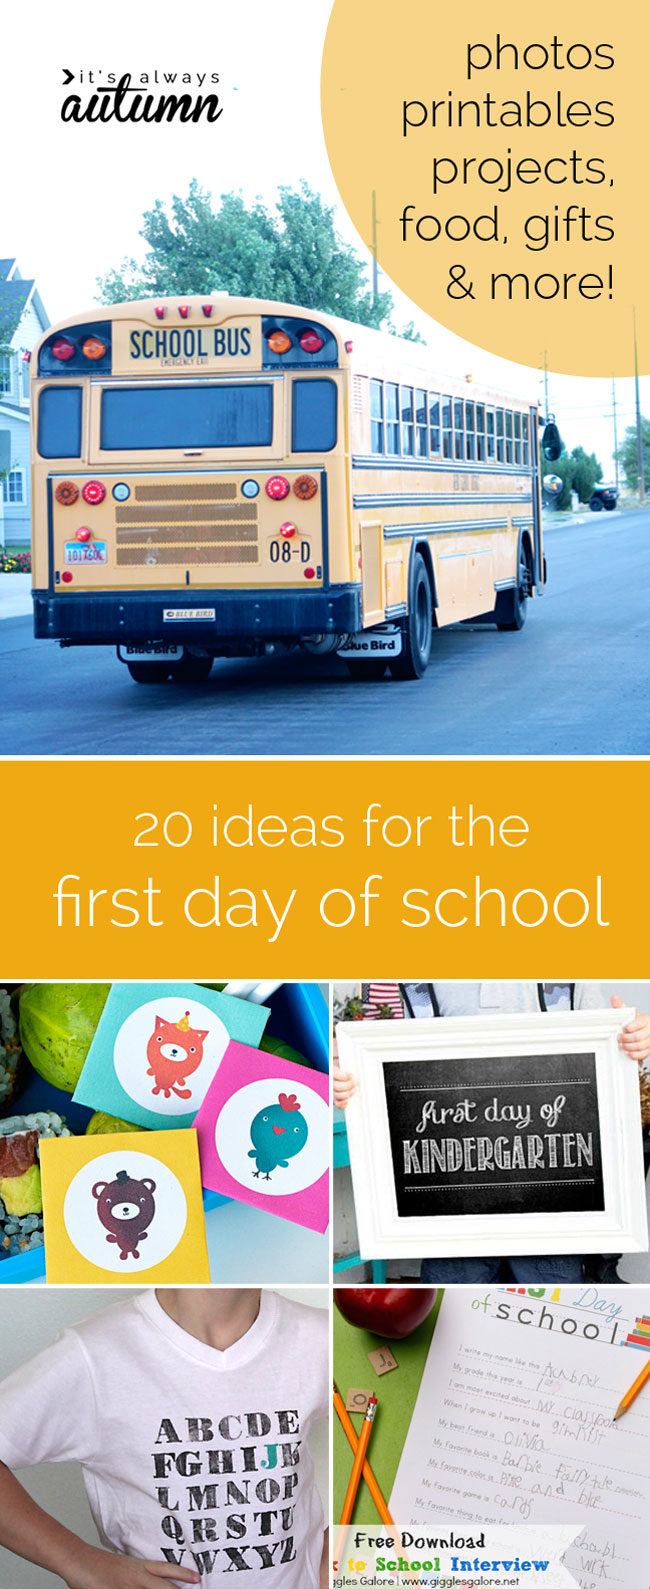 great ideas for the first day of school - outfits, photos, food, gifts, and more!